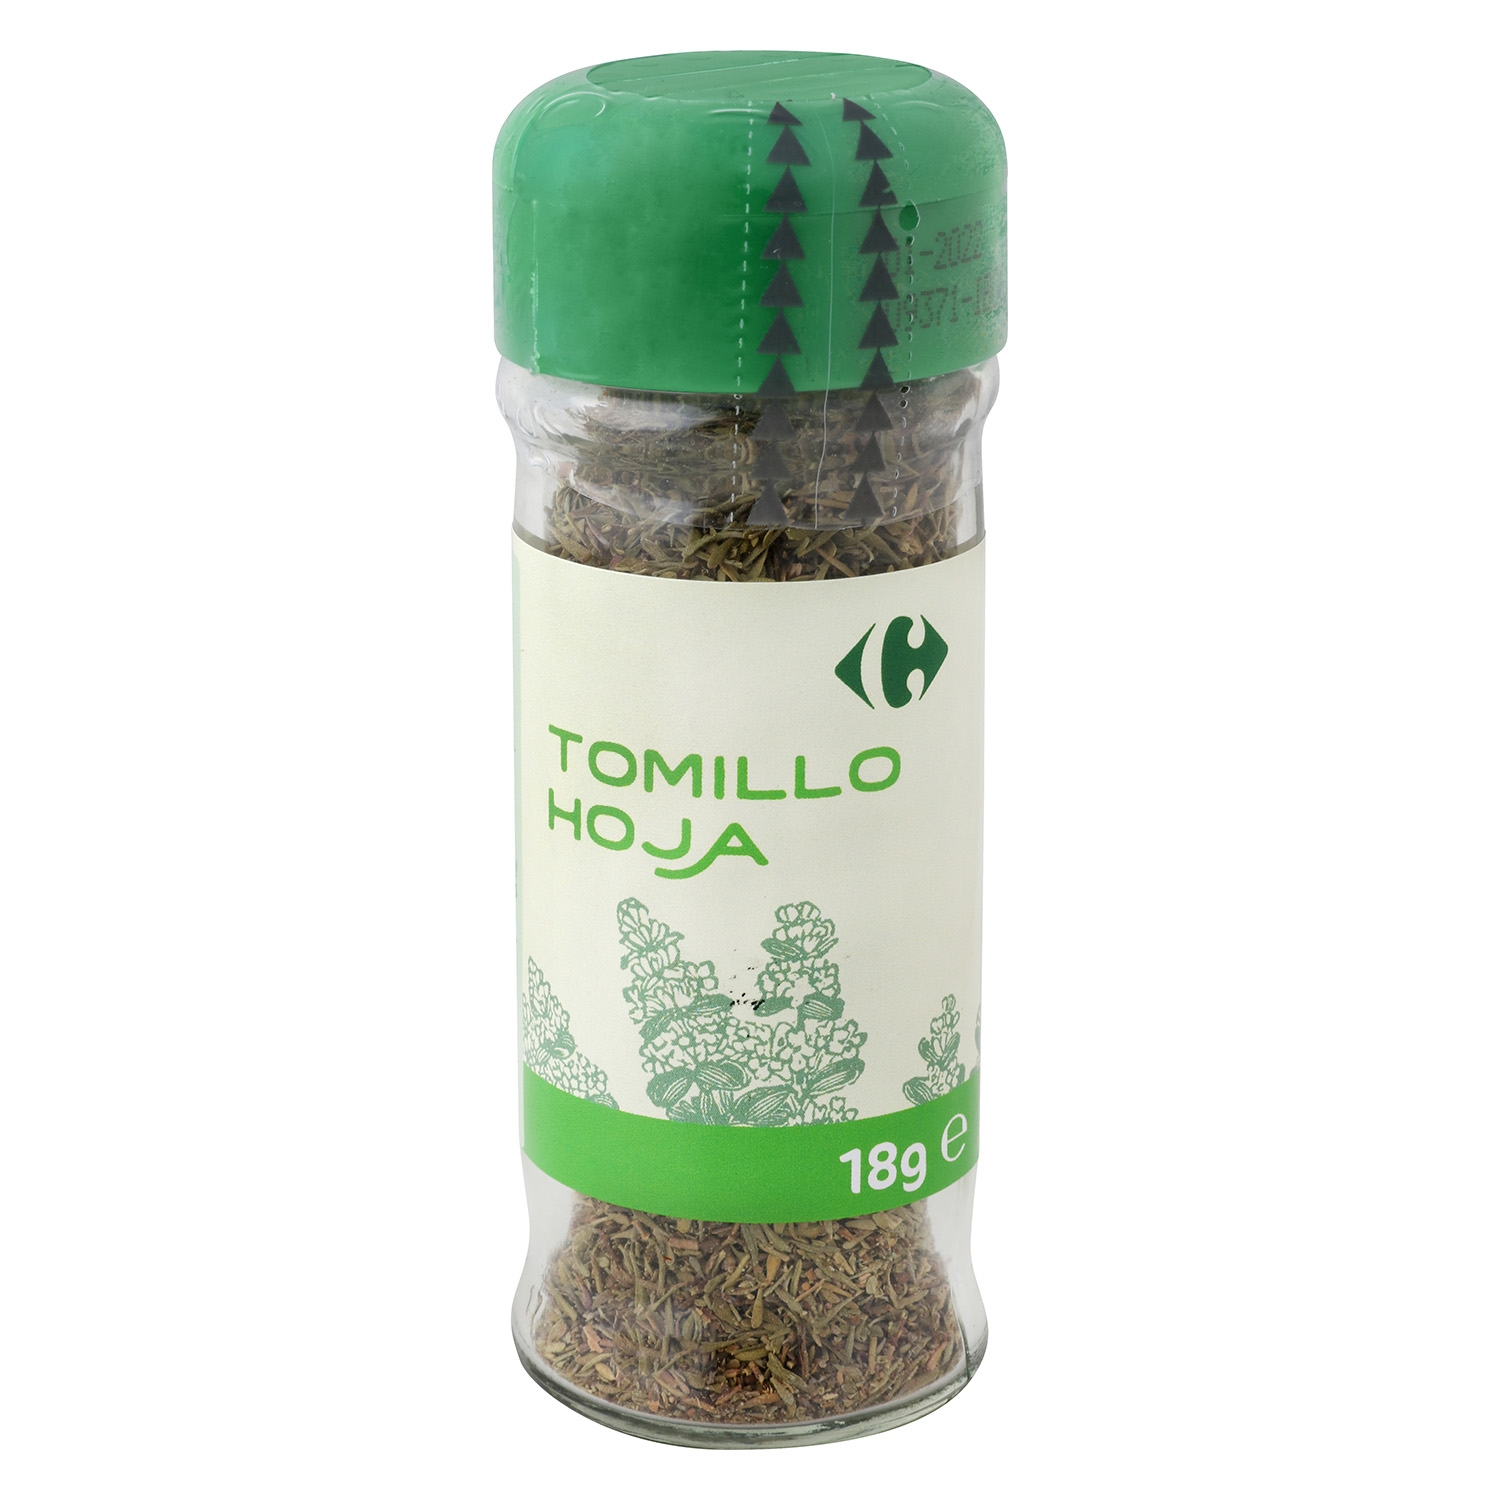 Tomillo Carrefour 18 g.